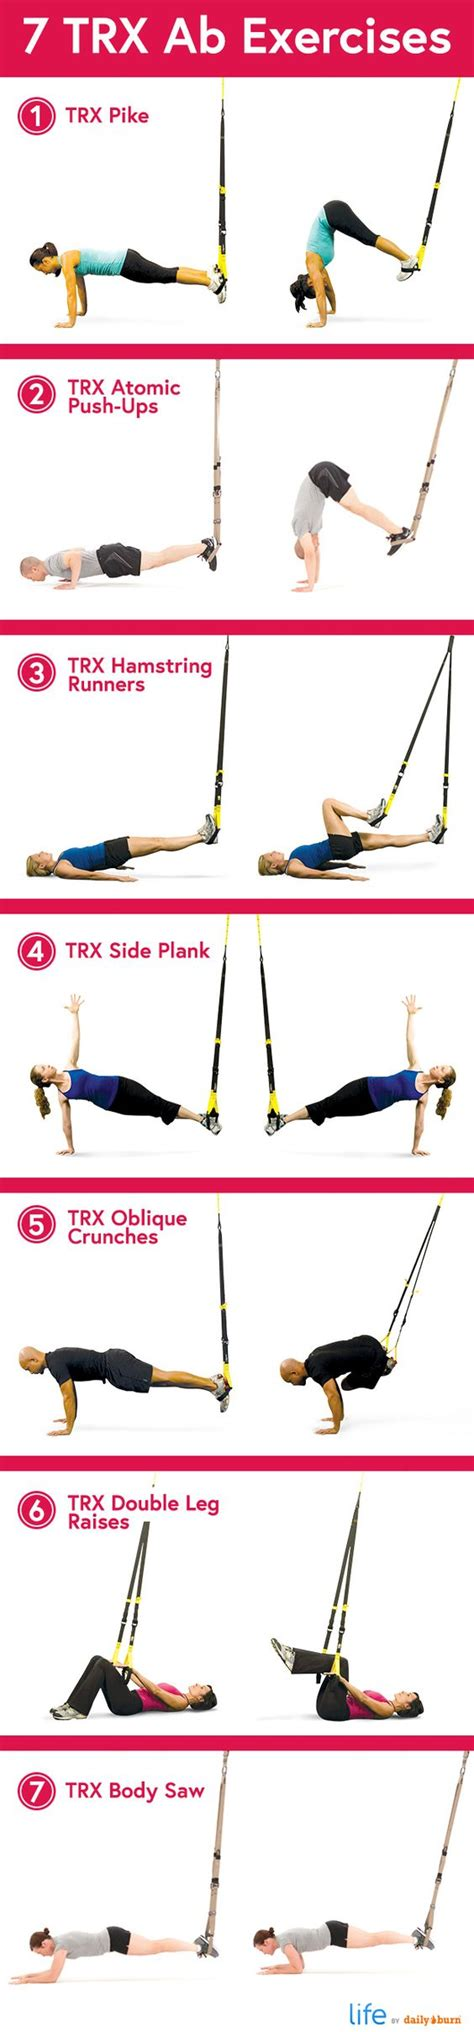 7 Exercises For The by No More Sit Ups 7 Trx Exercises To Work Your Abs Trx